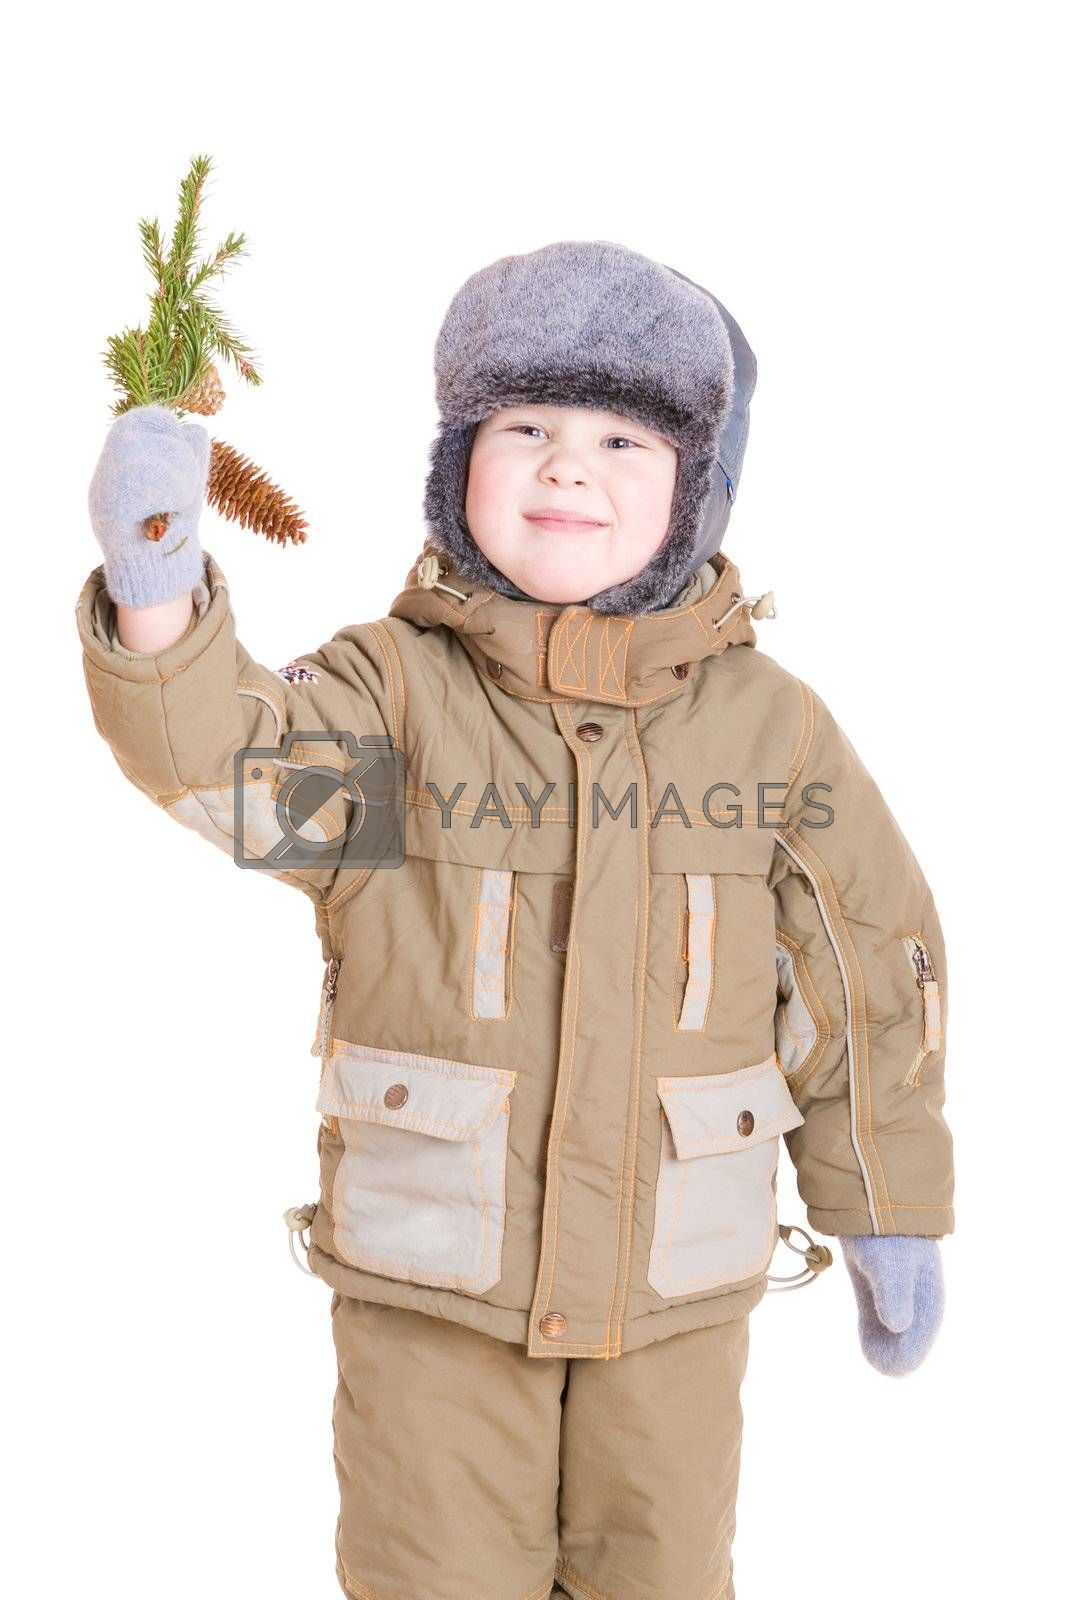 a smiling boy dressed for winter with a branch of fur tree with cones